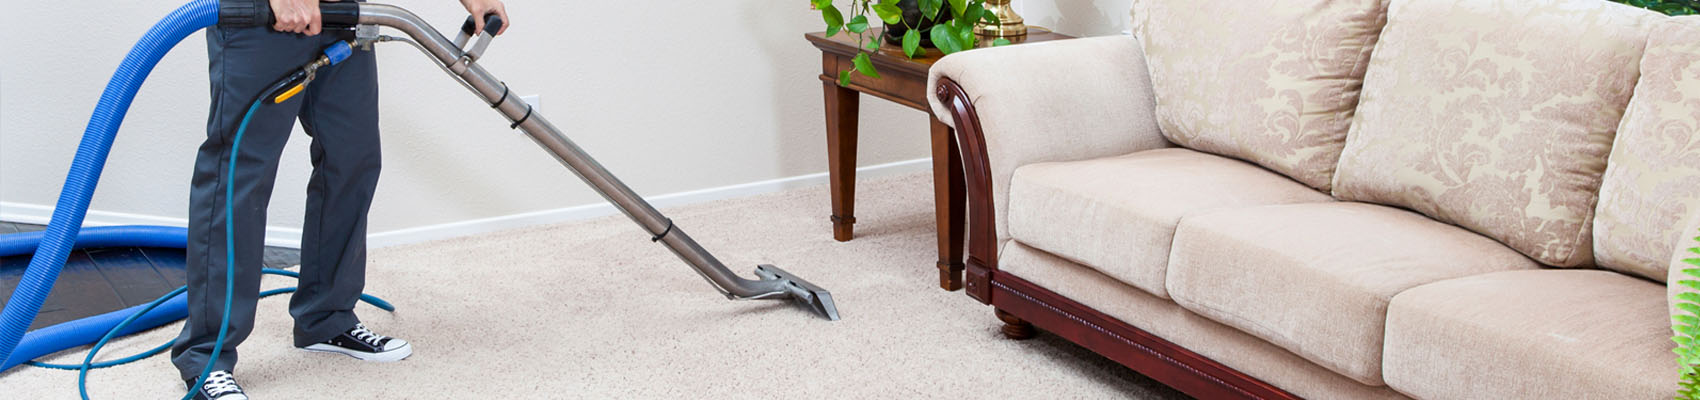 Sofa and Carpet Cleaning Services Delhi NCR